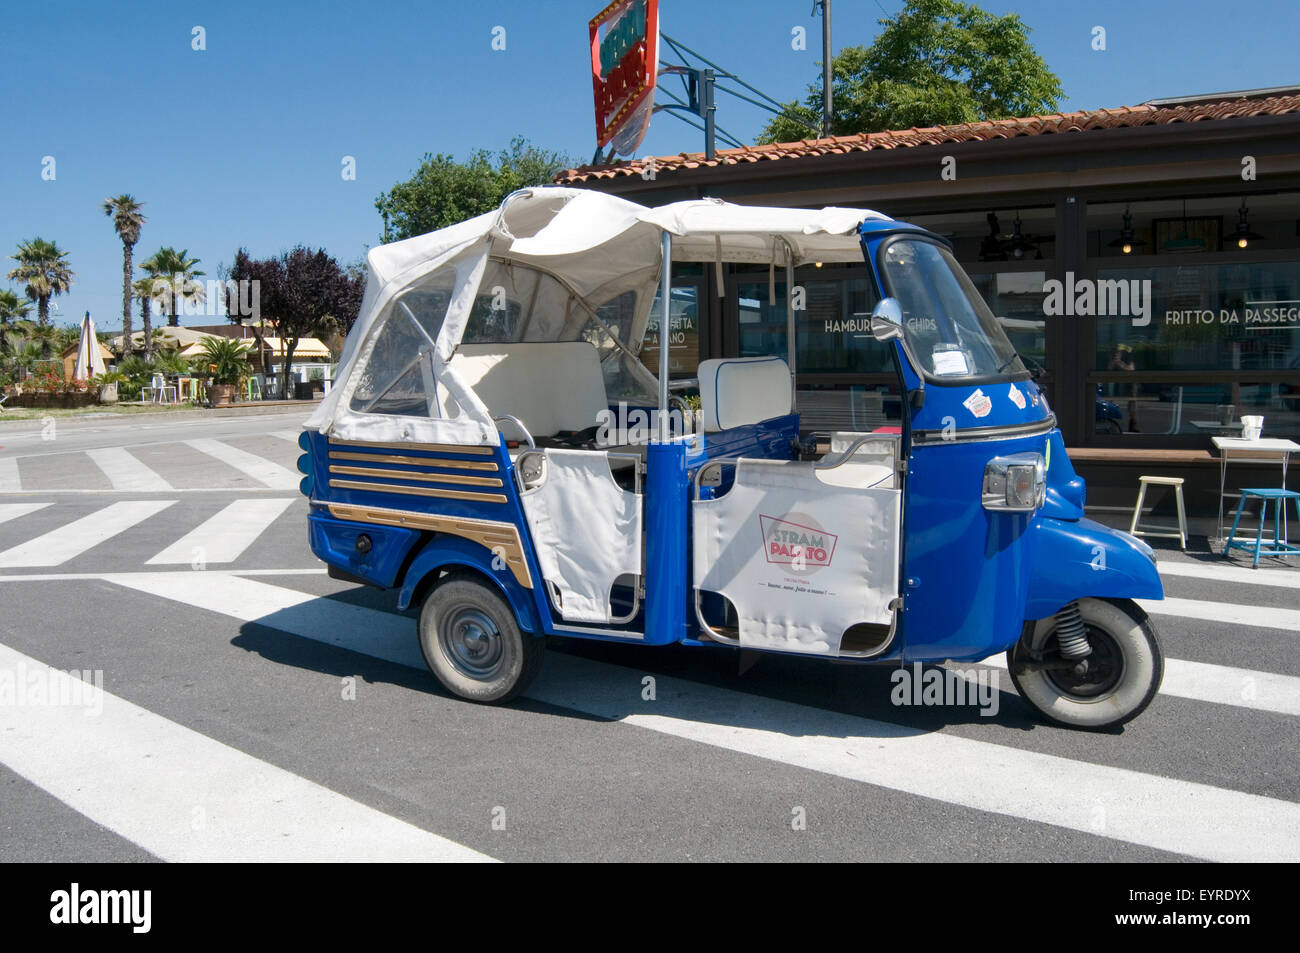 piaggio ape stock photos & piaggio ape stock images - alamy